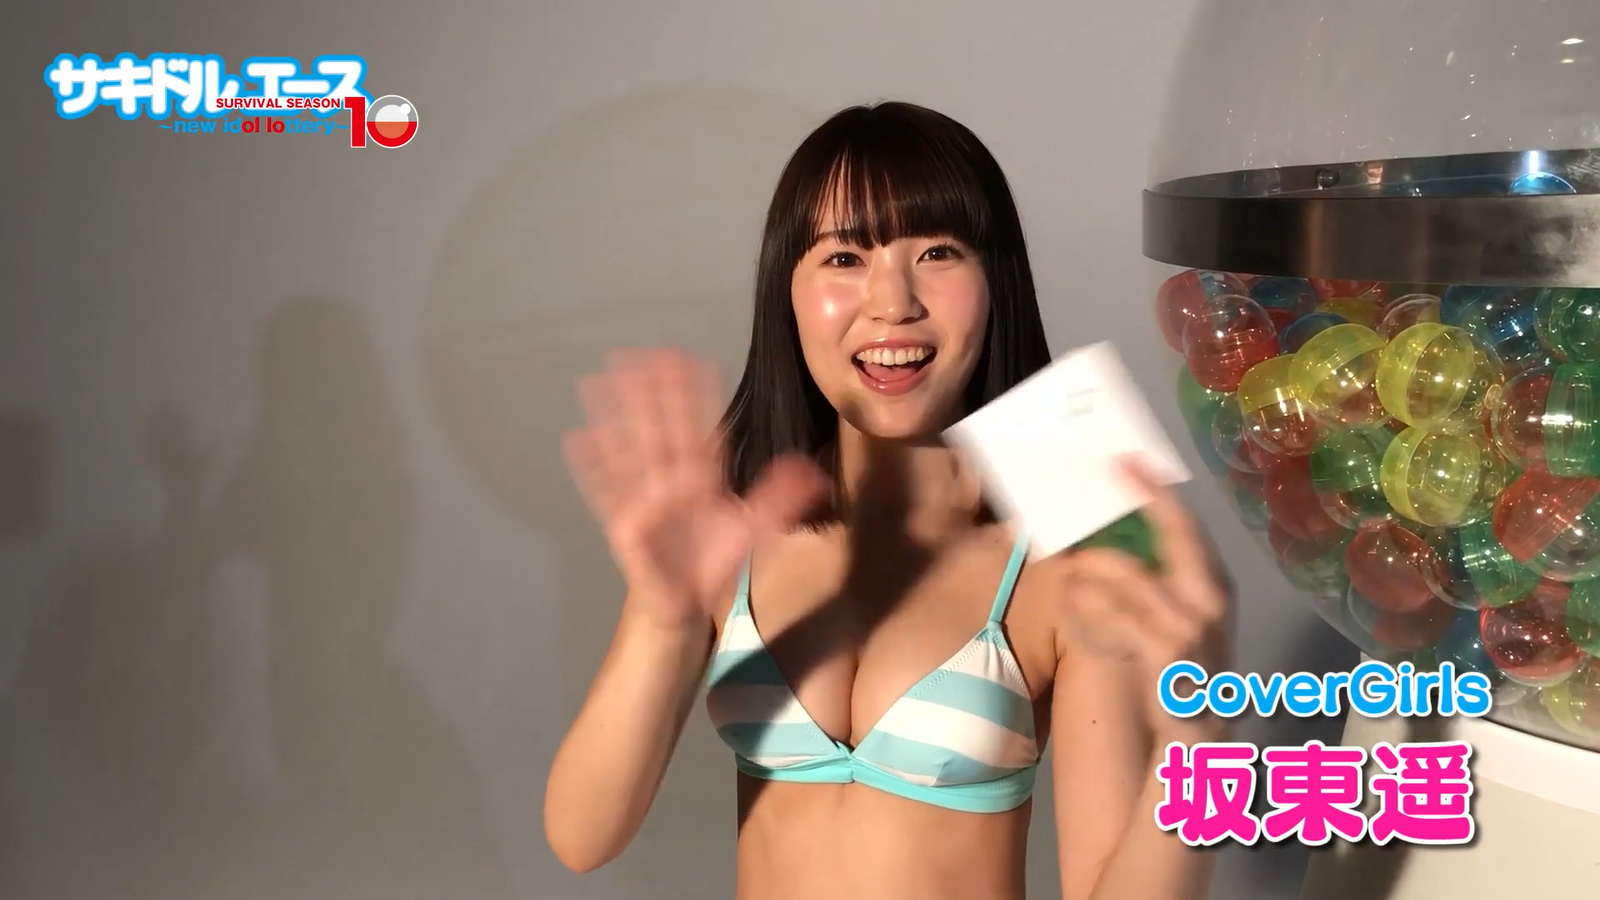 Sakidol Ace 10 Introduction Movie Capture of Swimsuit112